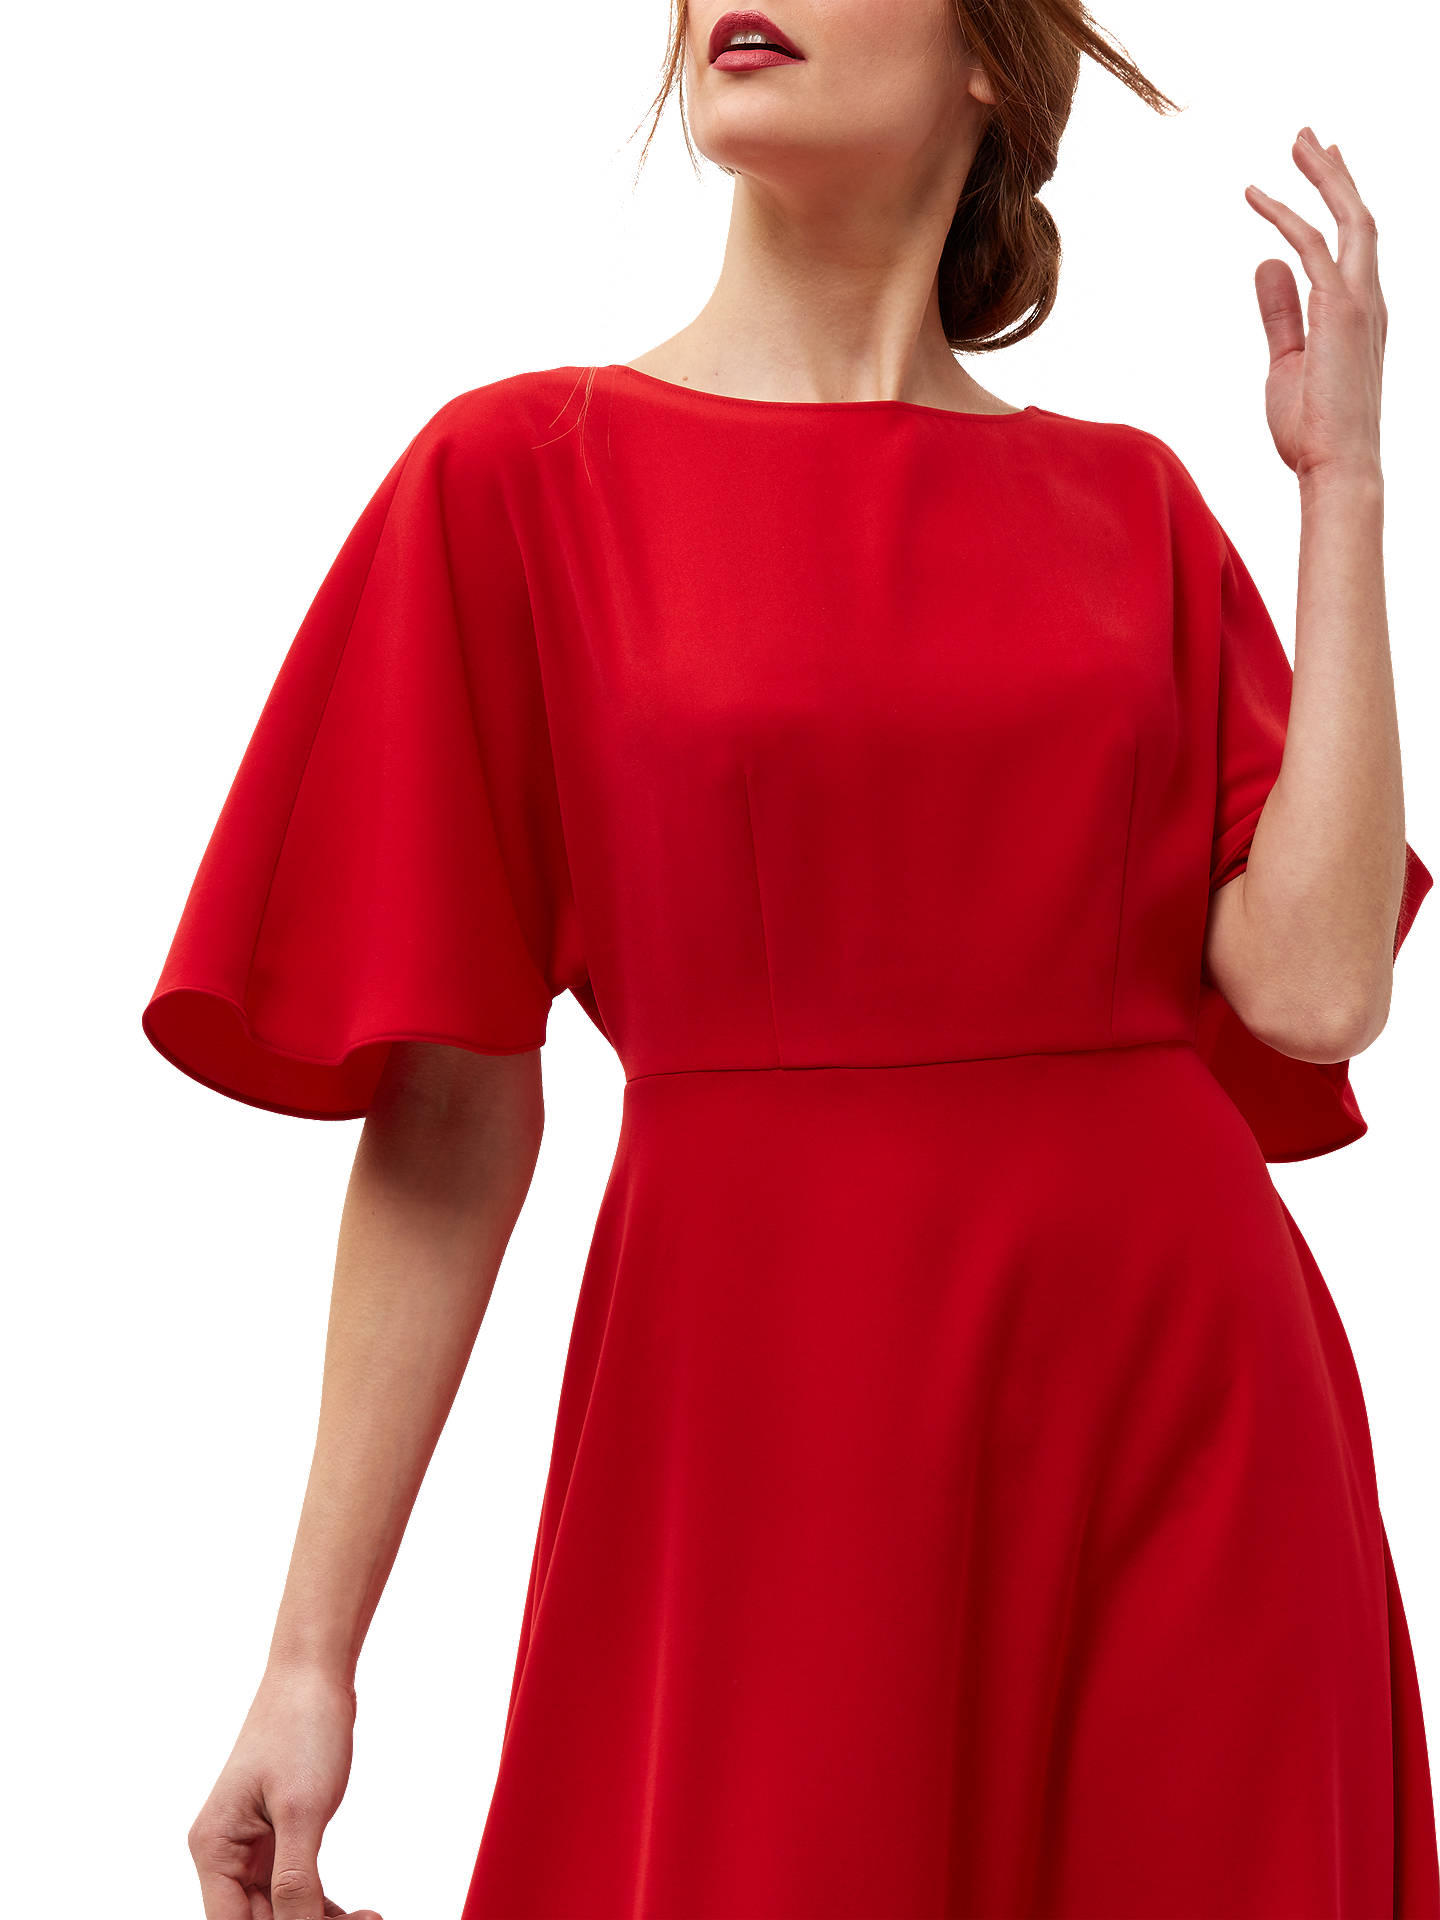 6a394b7f1e3c Jaeger Batwing Fit-and-Flare Dress, Bright Red at John Lewis & Partners